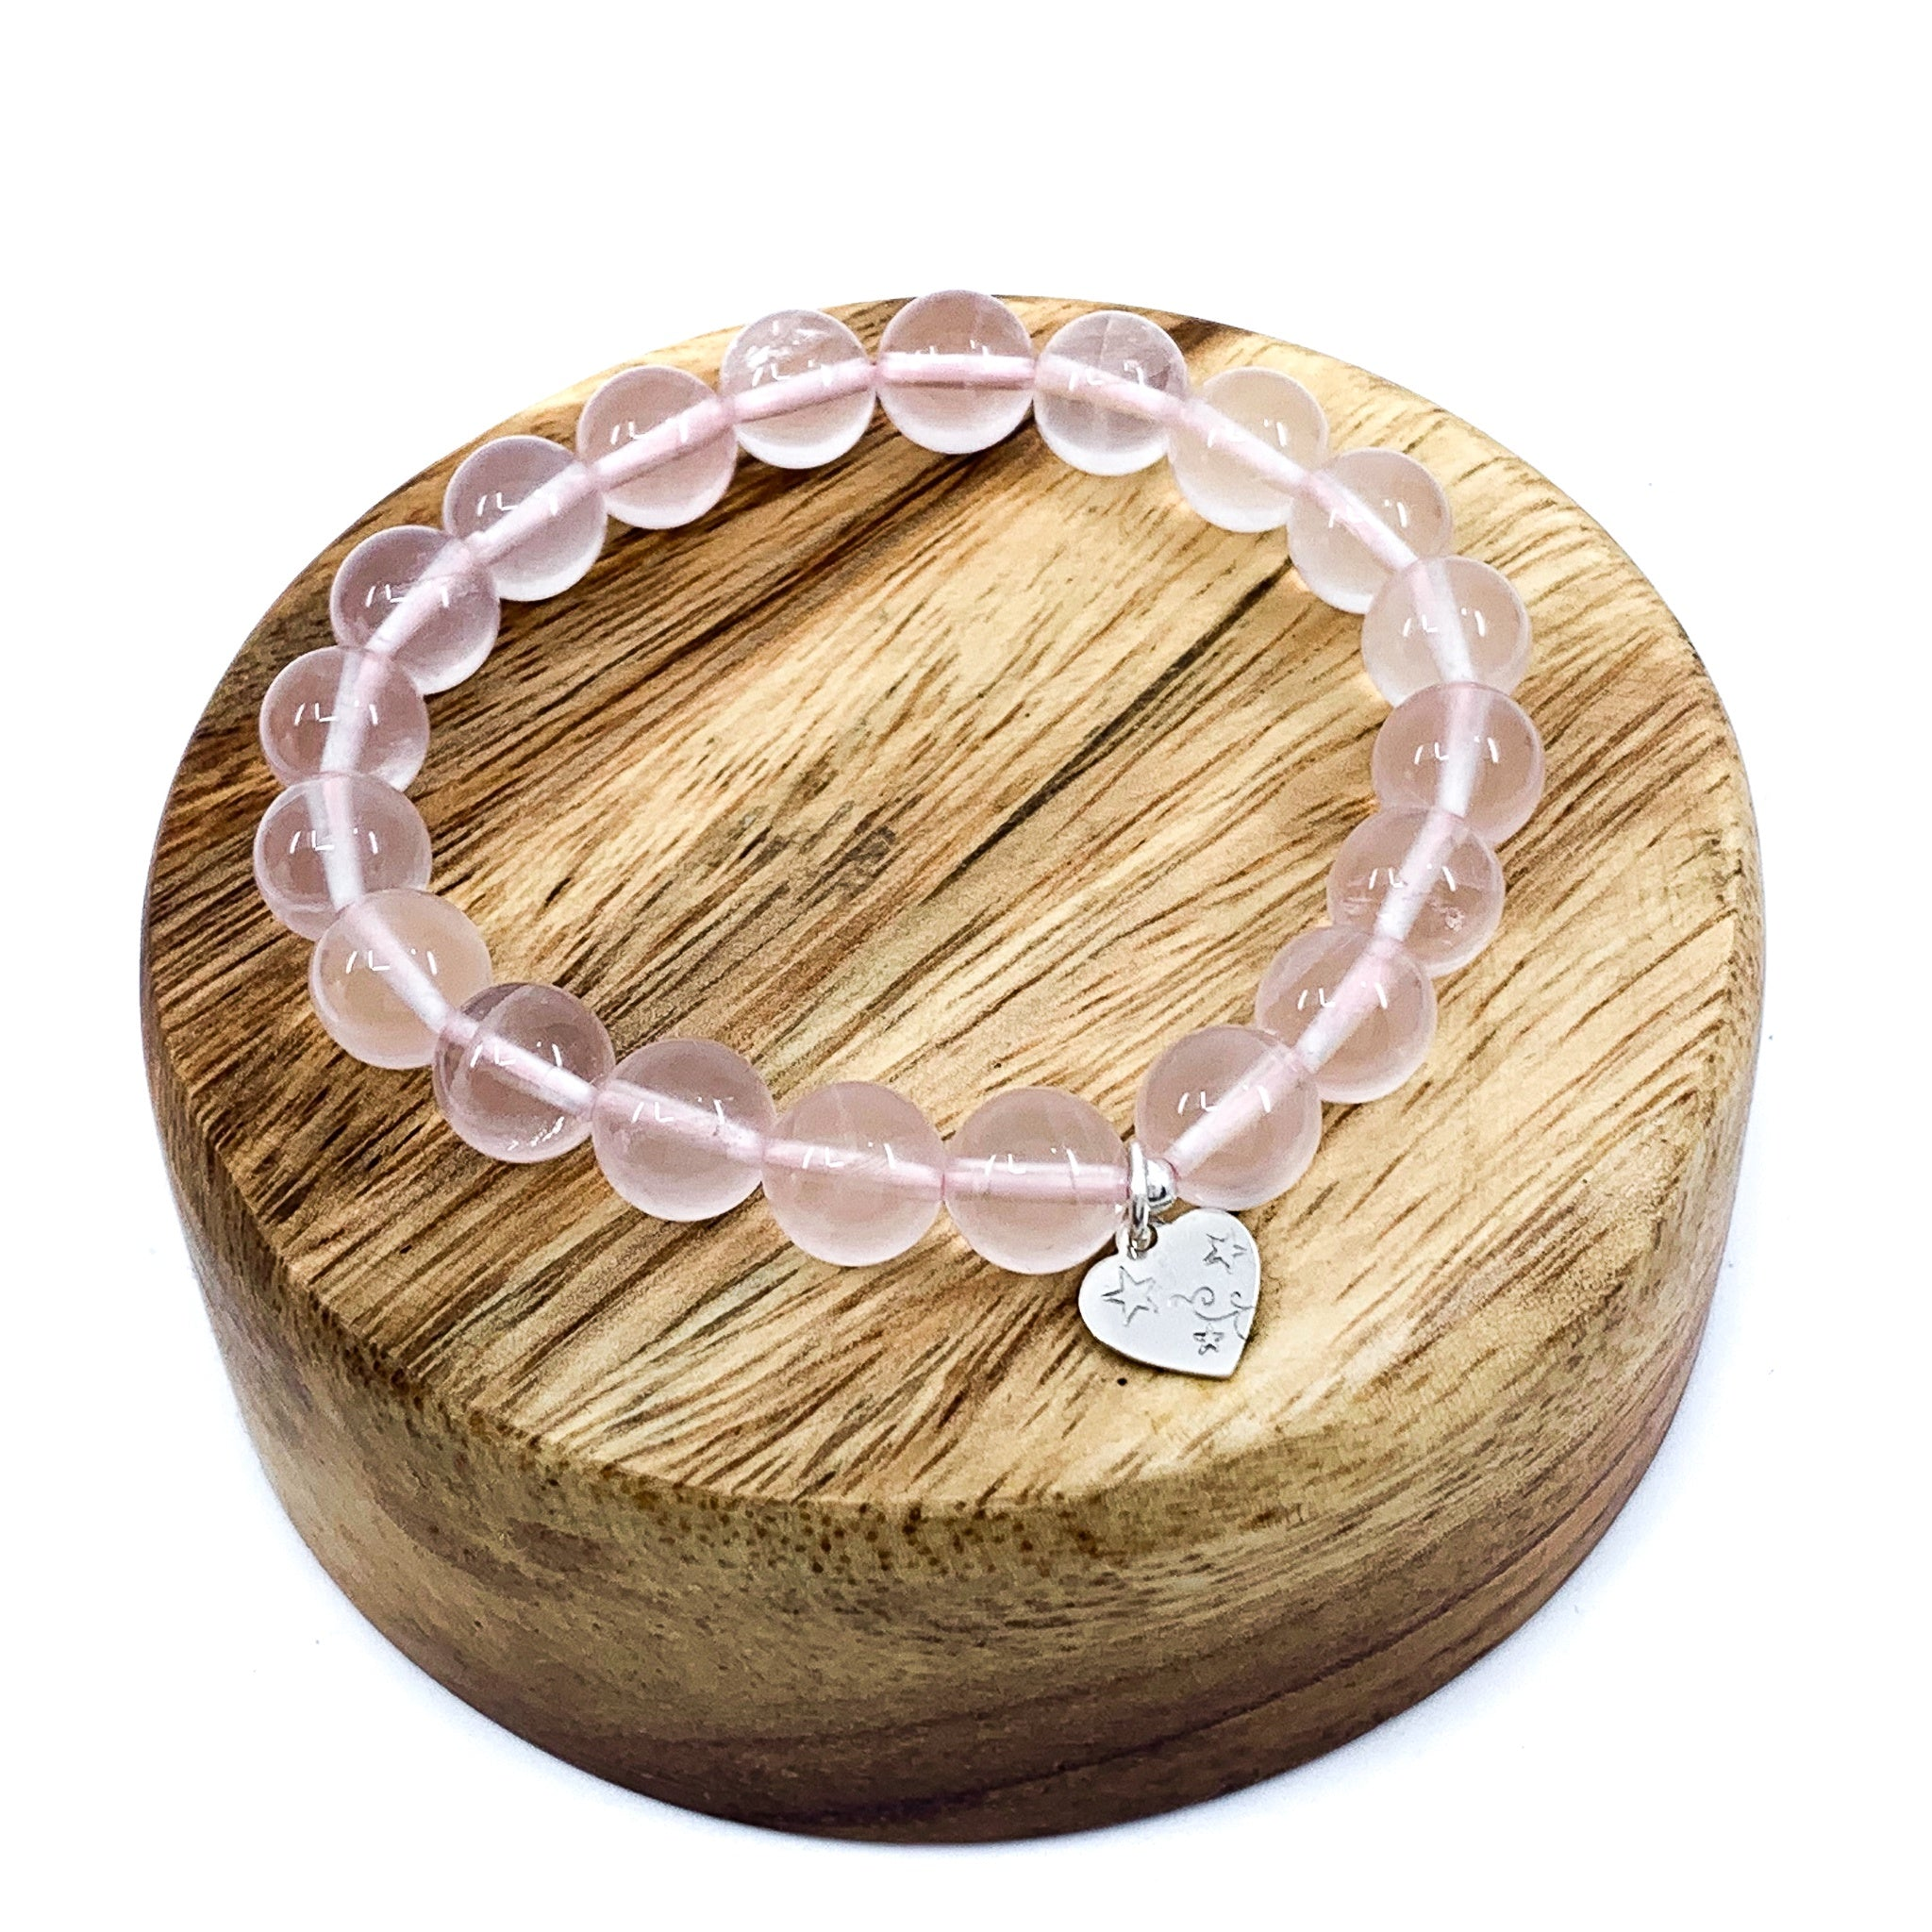 Rose Quartz Stretchy Cord Bracelet - 10mm Smooth Round